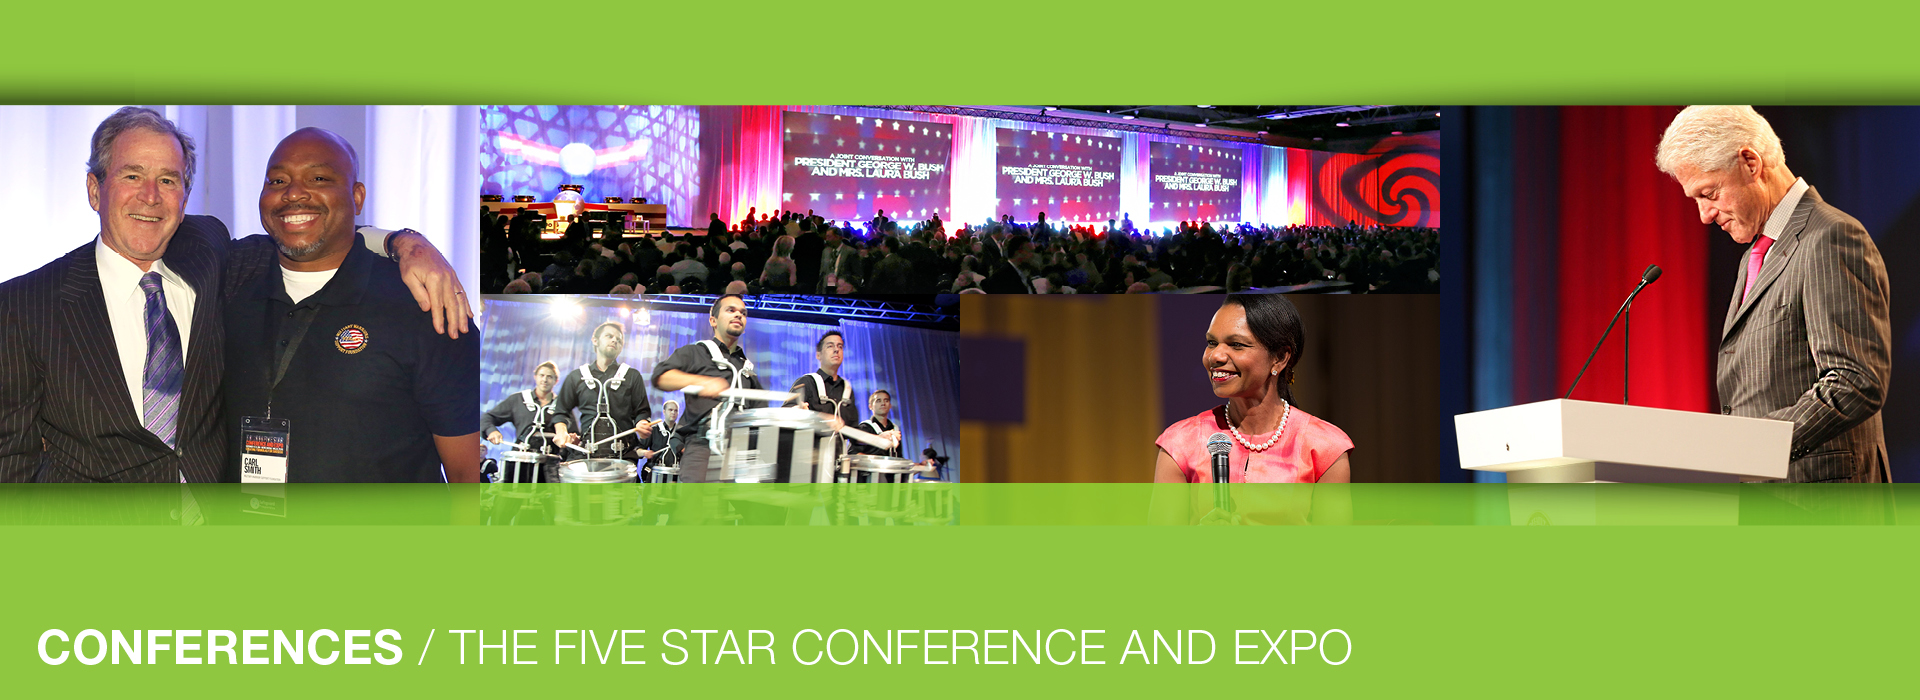 Five Star Conference and Expo